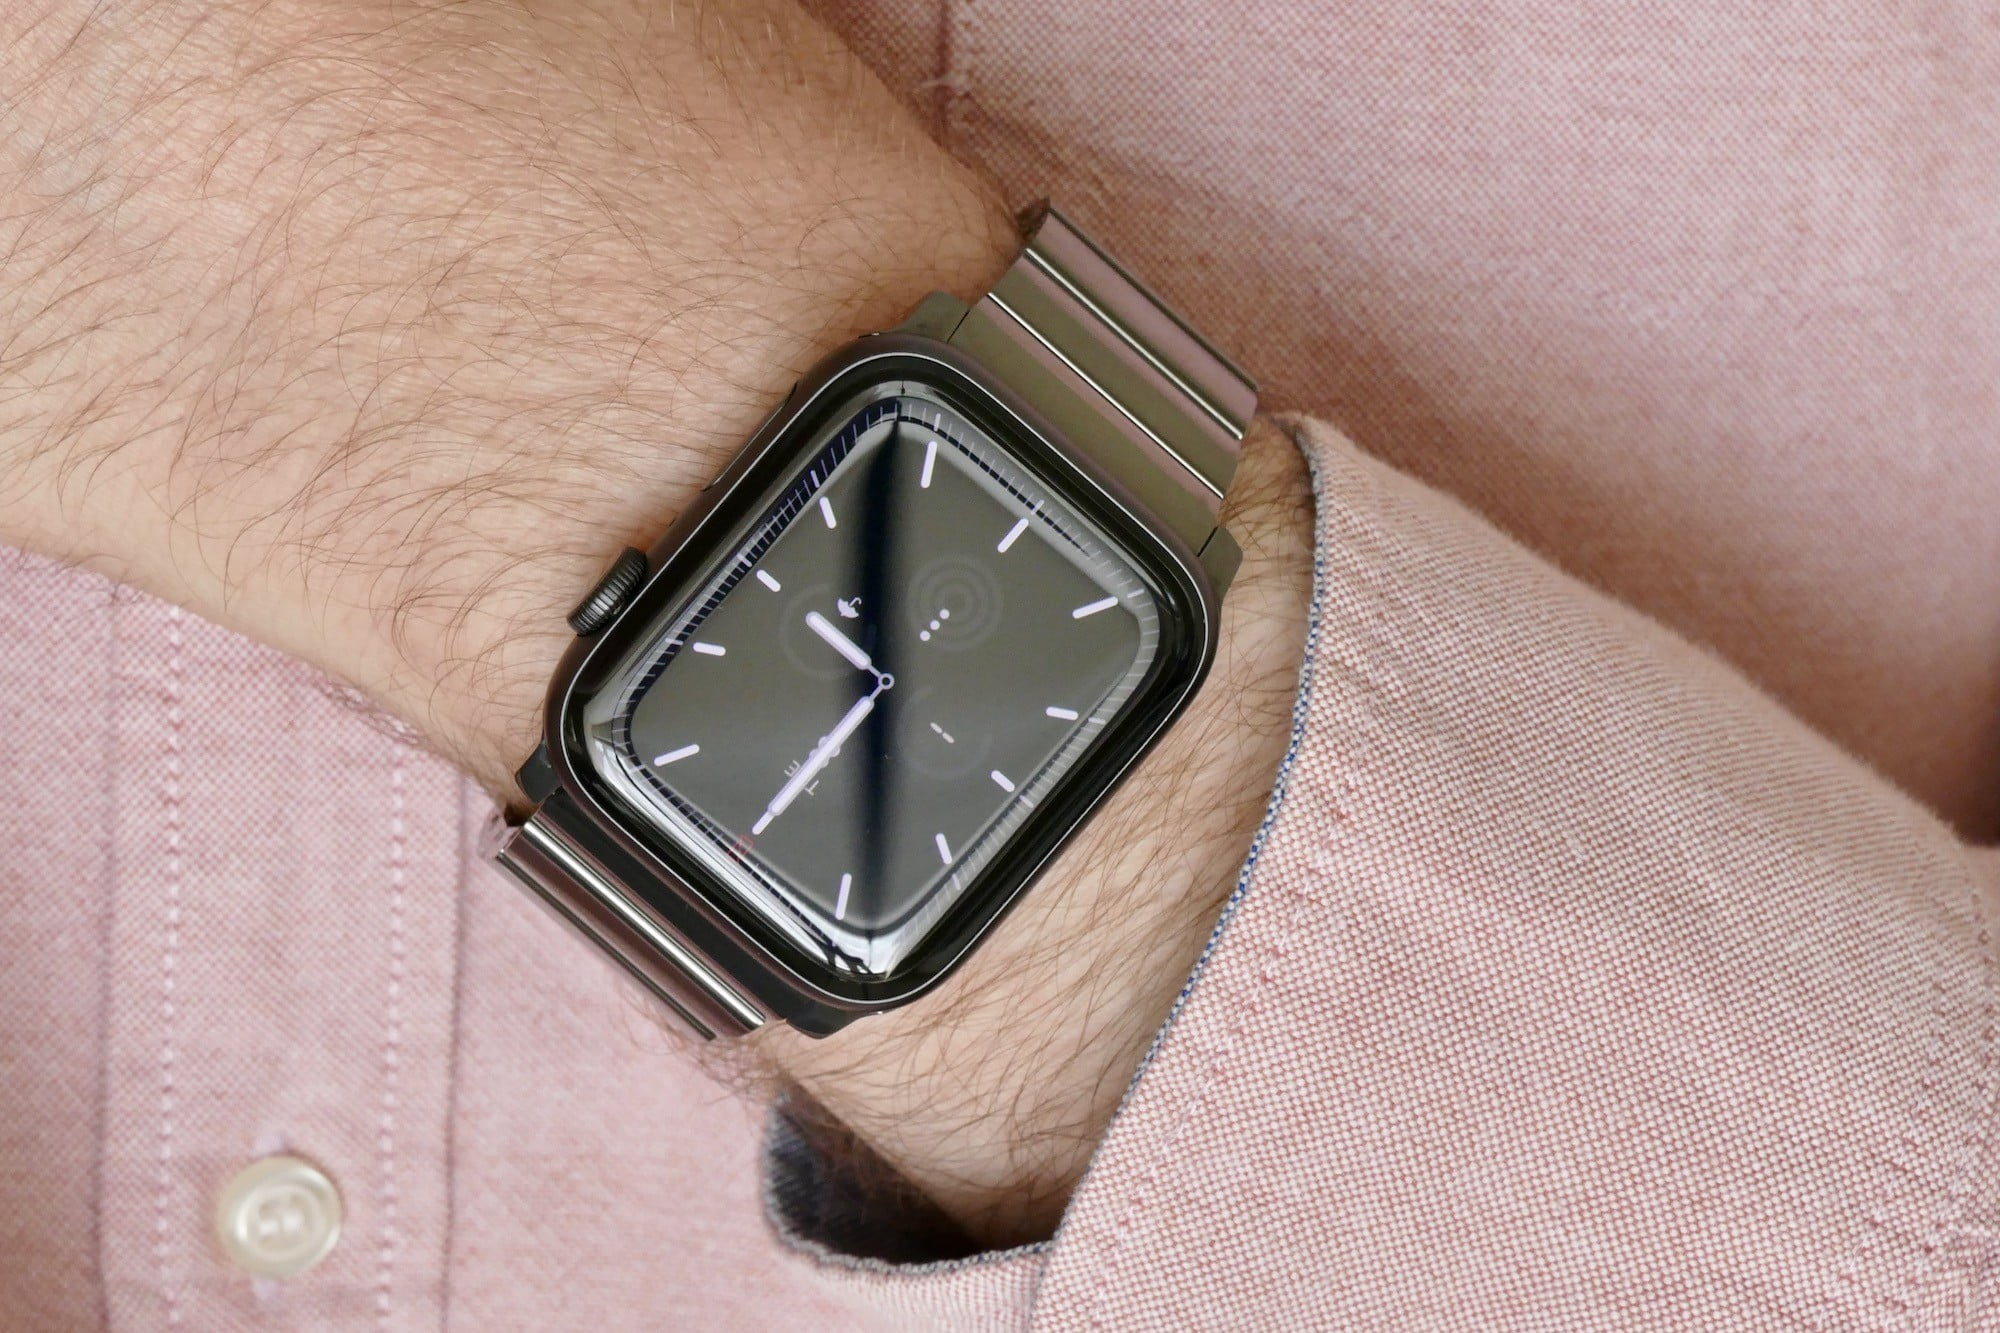 nomad titanium steel band apple watch hands on photos price release date space grey